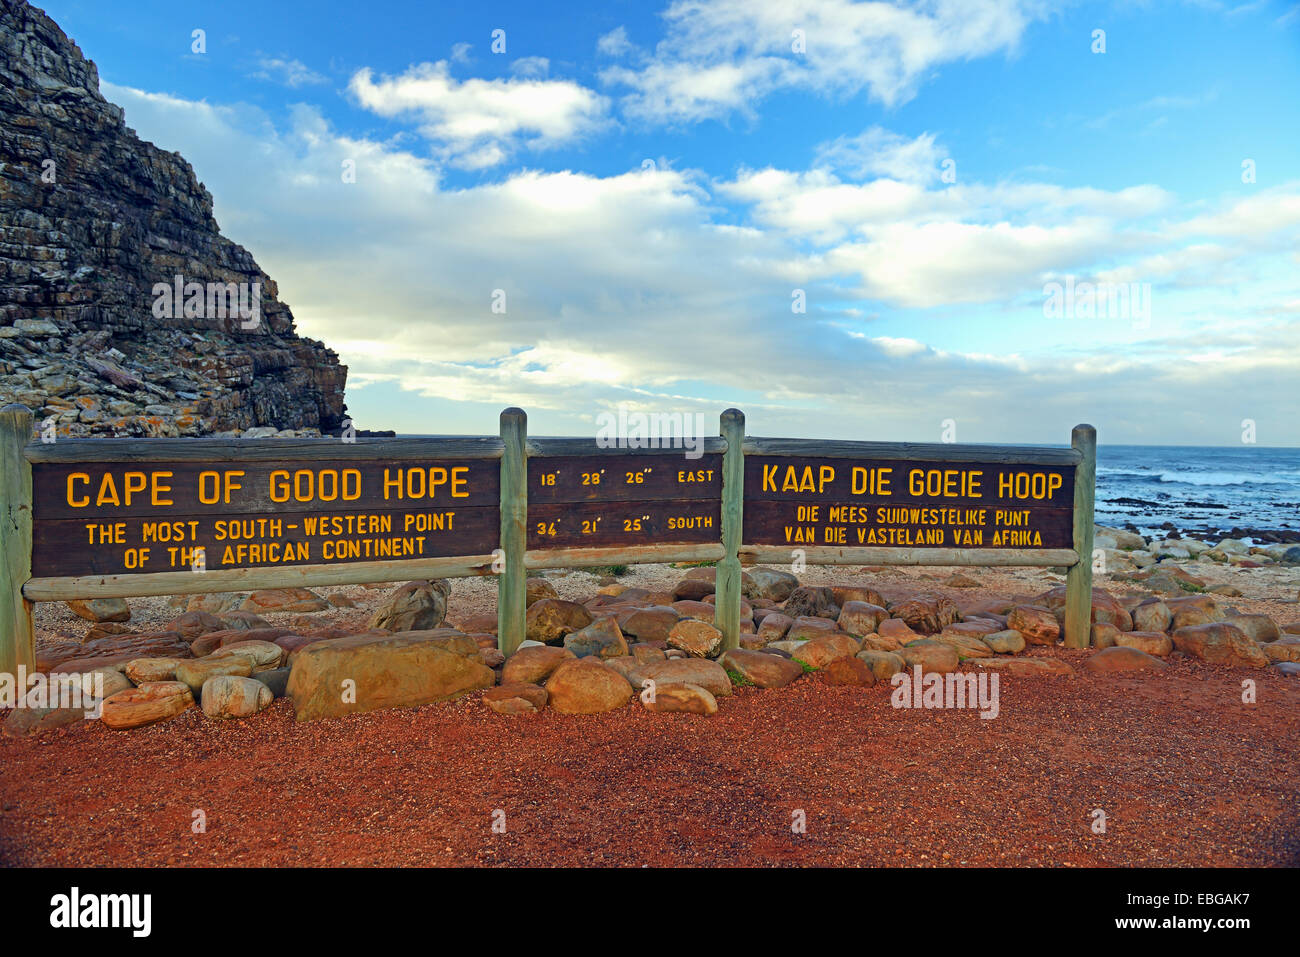 Sign, Cape of Good Hope, Cape of Good Hope, Western Cape, South Africa - Stock Image